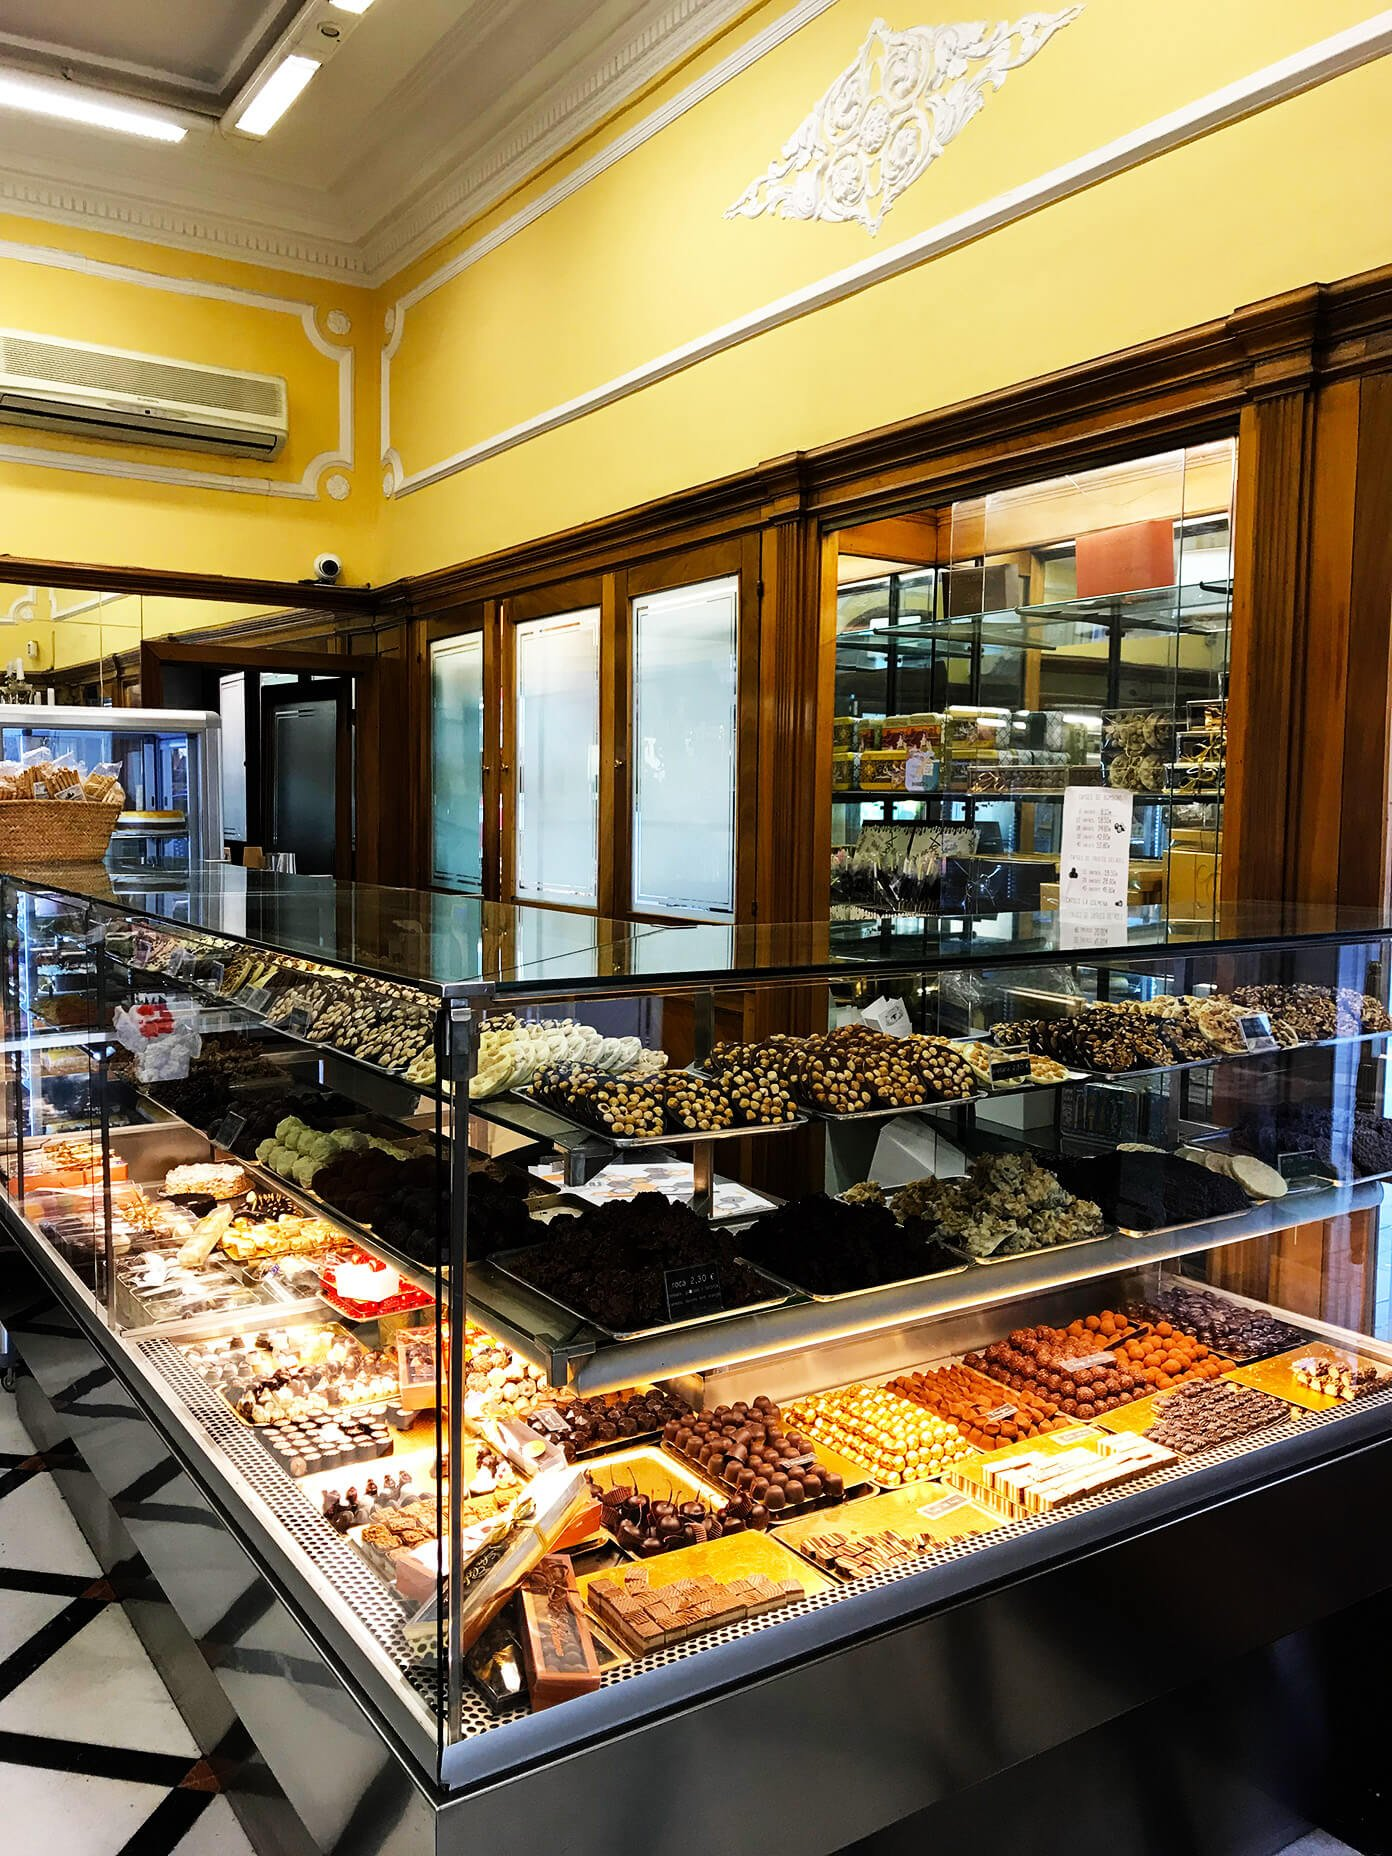 La Colmena - classic sweet shop | Gimme Some Barcelona Travel Guide